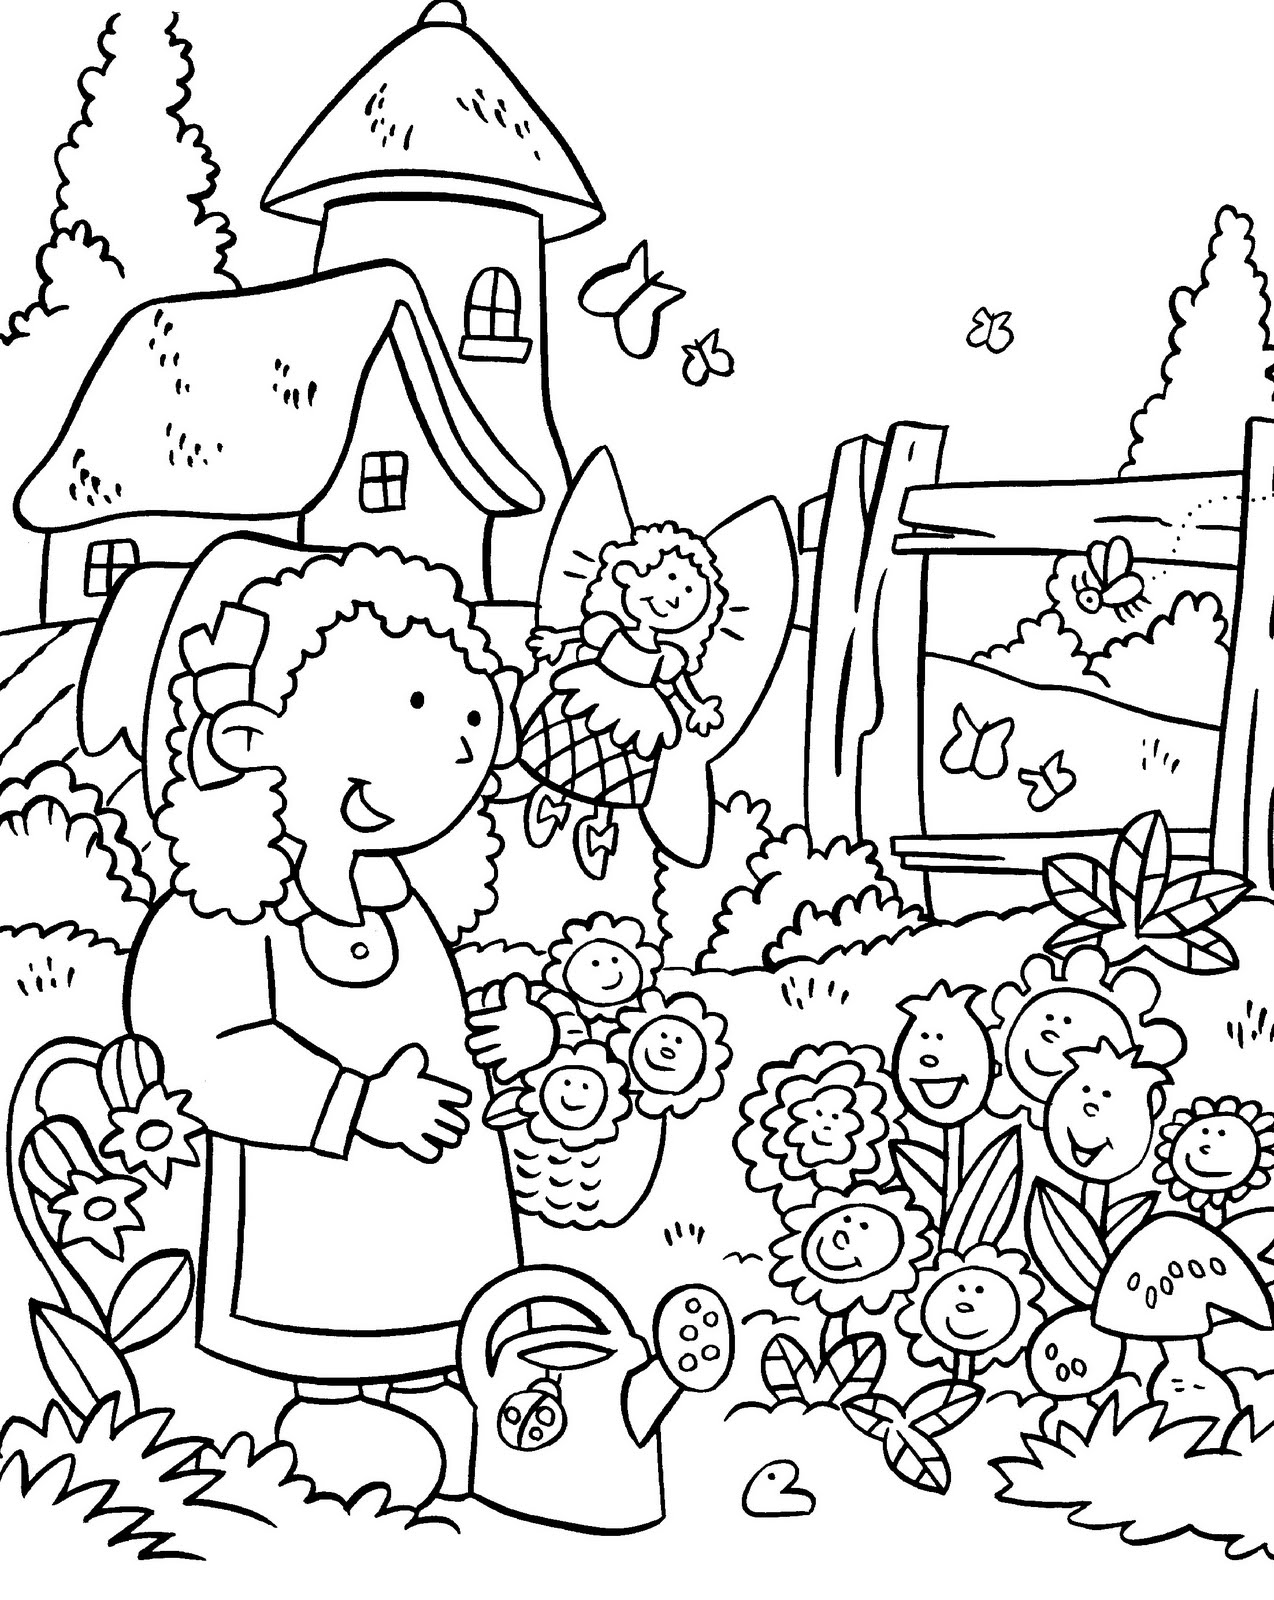 coloring pages house with garden garden pages house with garden coloring